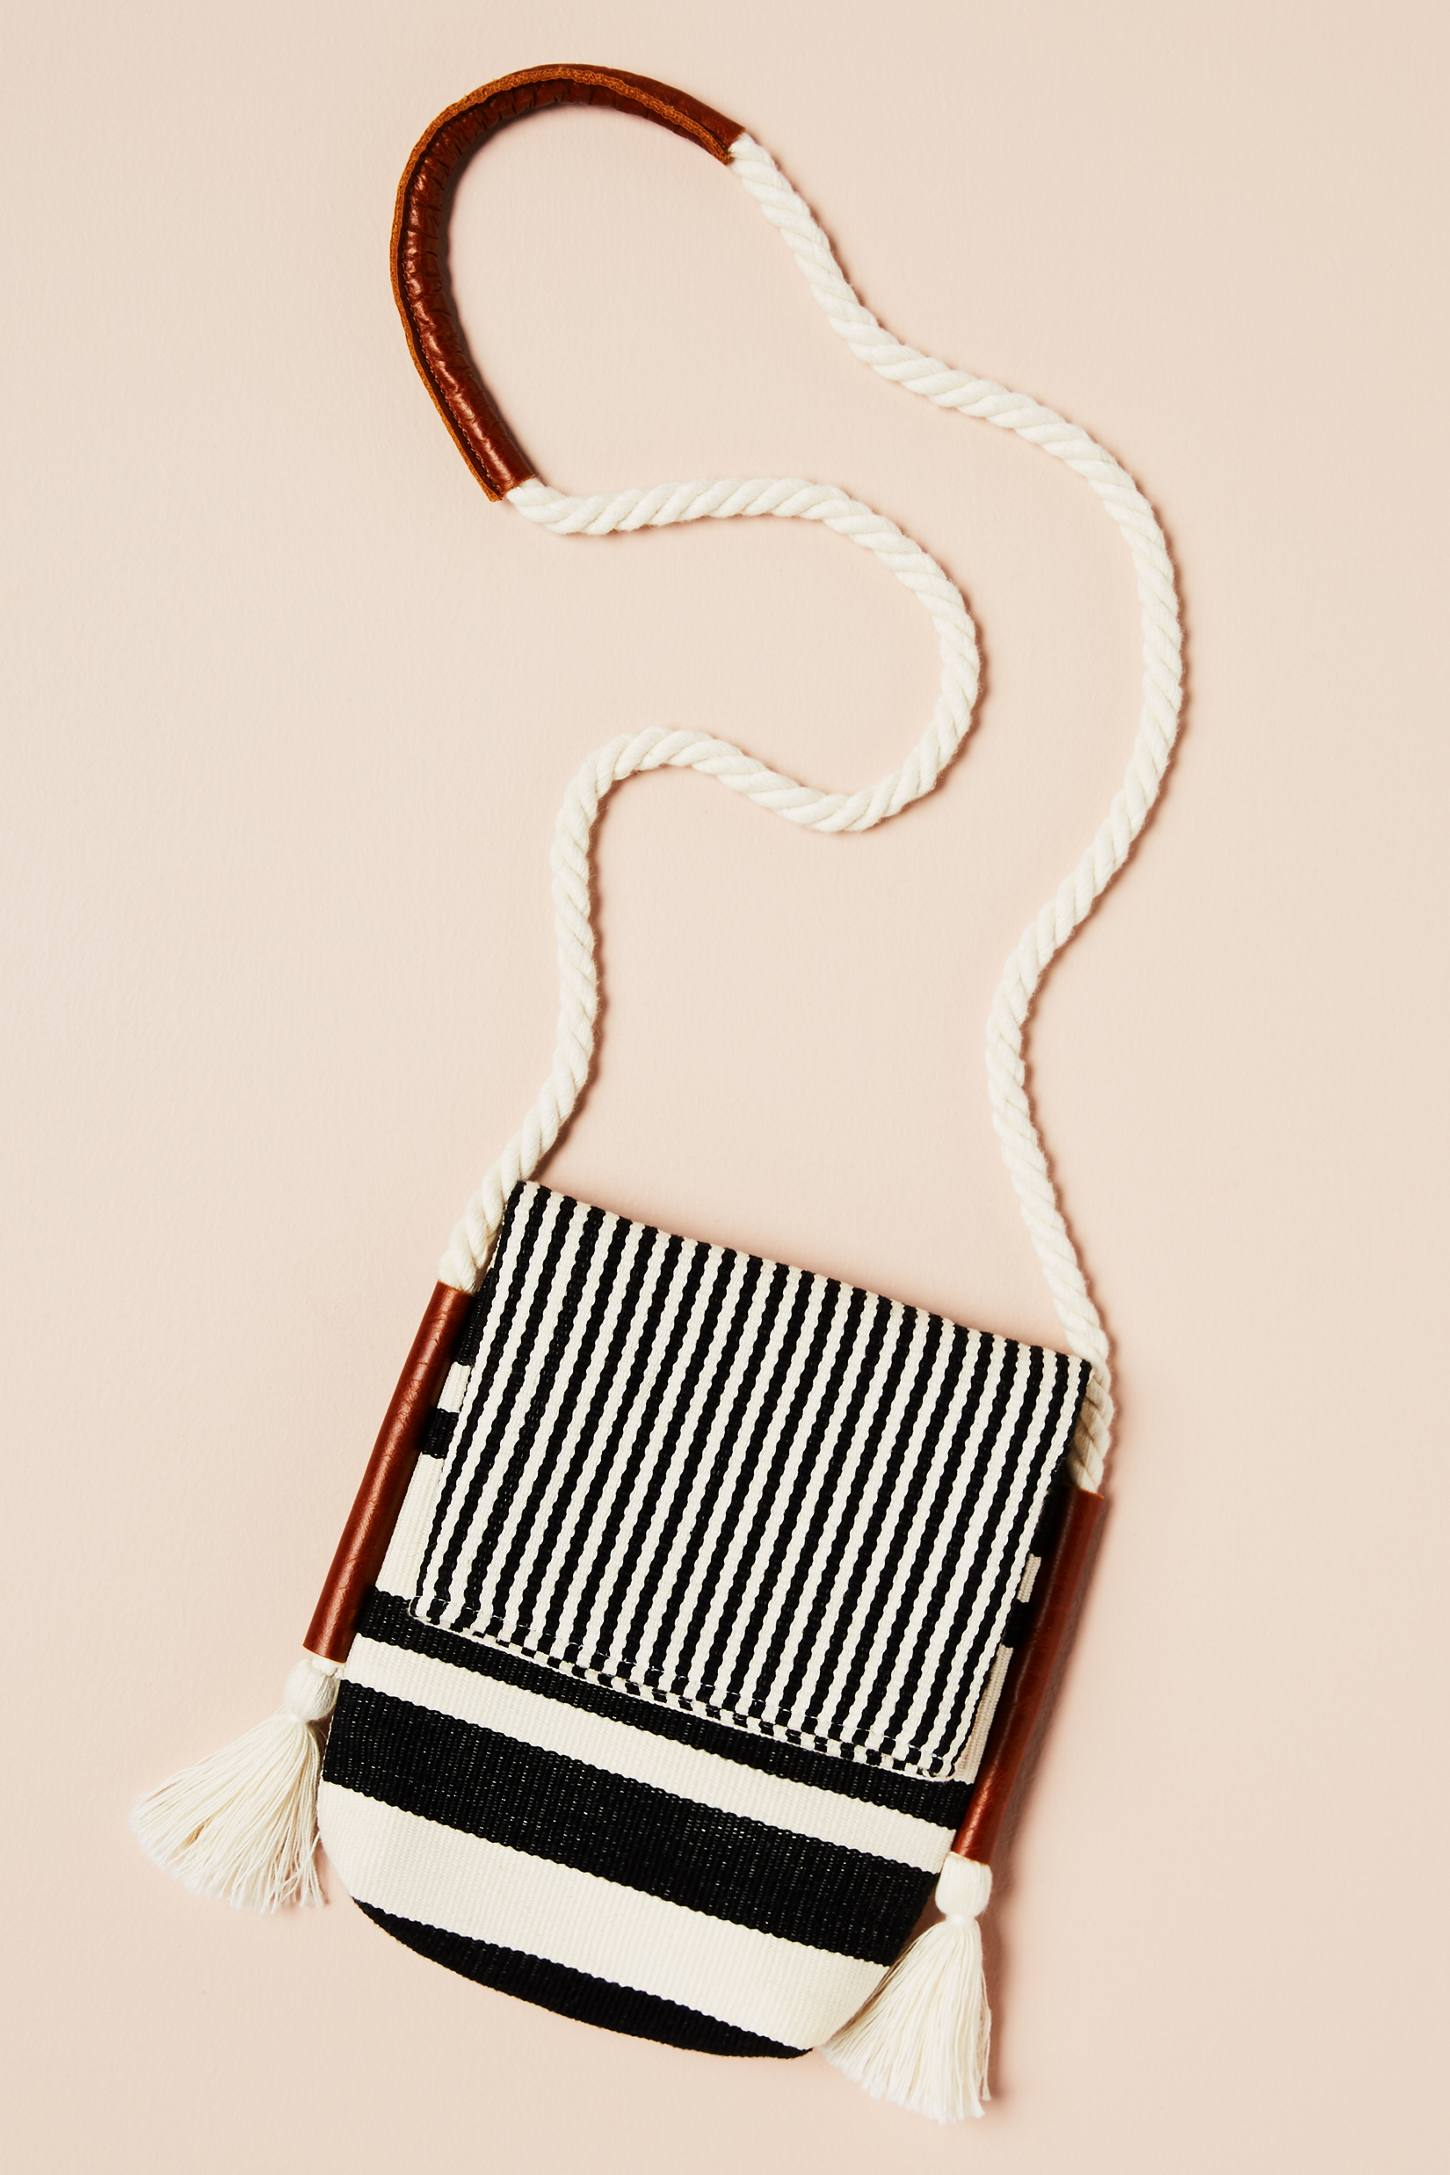 Slide View: 1: Tramway Crossbody Bag